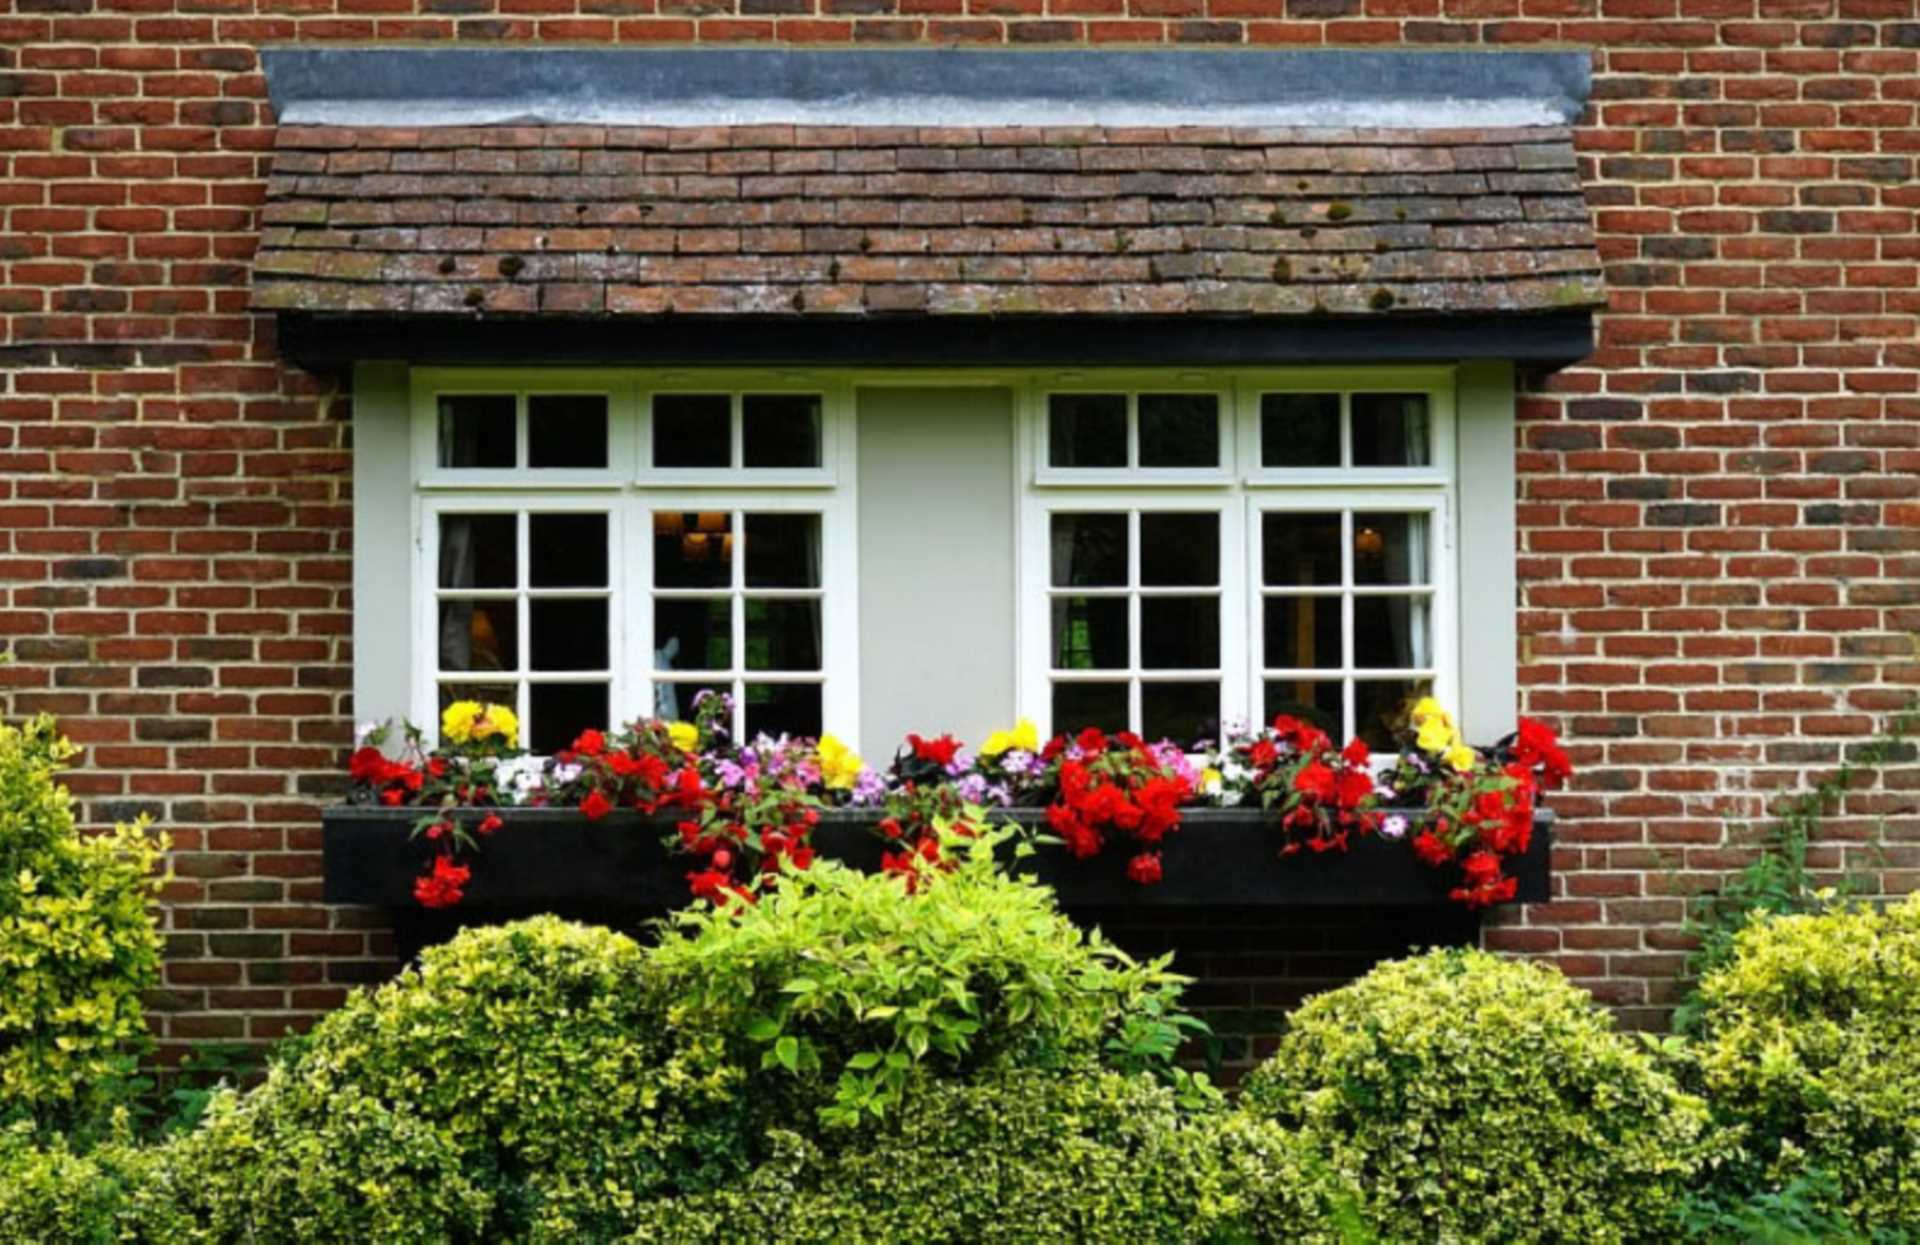 Using Letting Agents to Find a Rented Home – Part 2